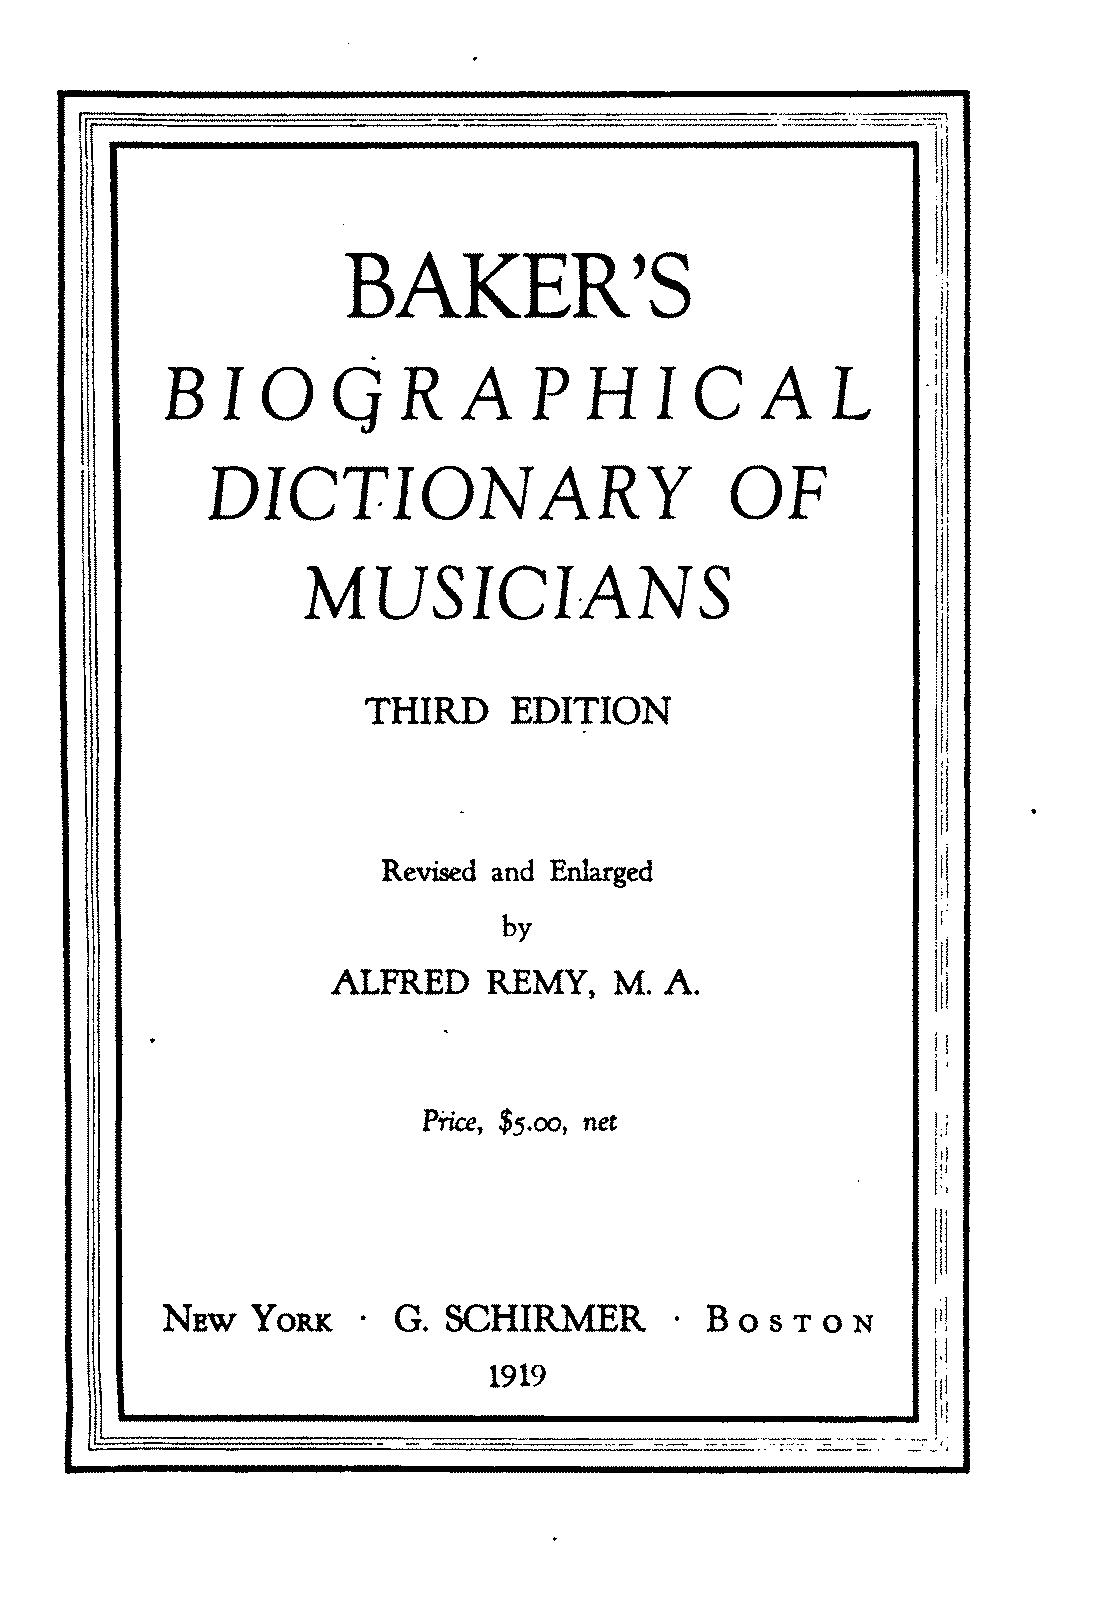 PMLP192847-Biographical dictionary of musicians1919.pdf